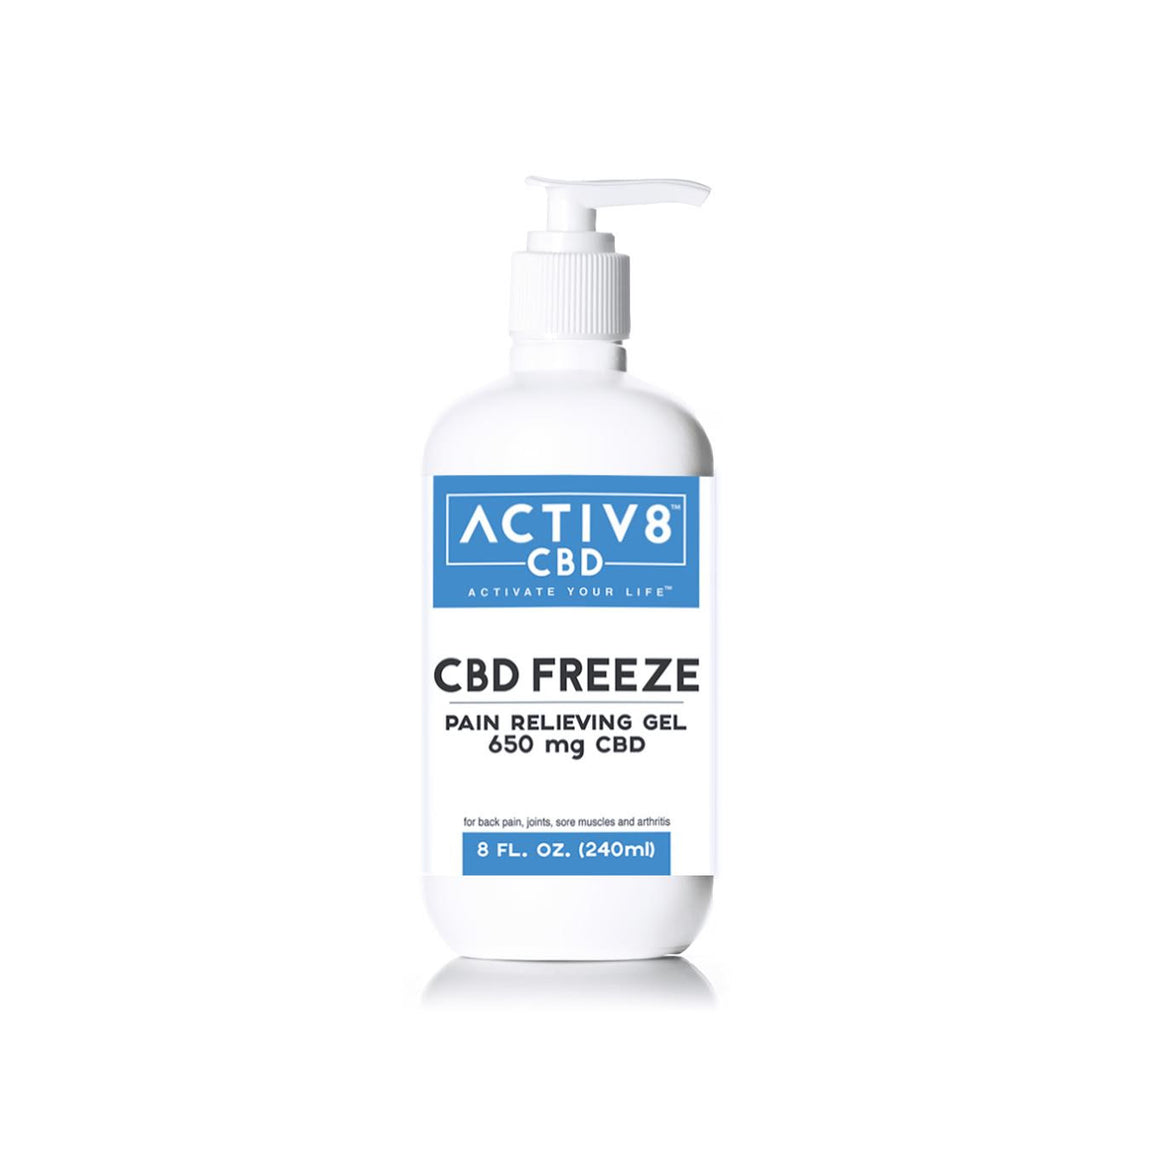 ACTIV8 CBD FREEZE (Pain Relieving Gel | Extra Strength Formula) - (650mg CBD Per Bottle - 130 Servings) - For Back Pain, Sore Muscles, Joints & Arthritis